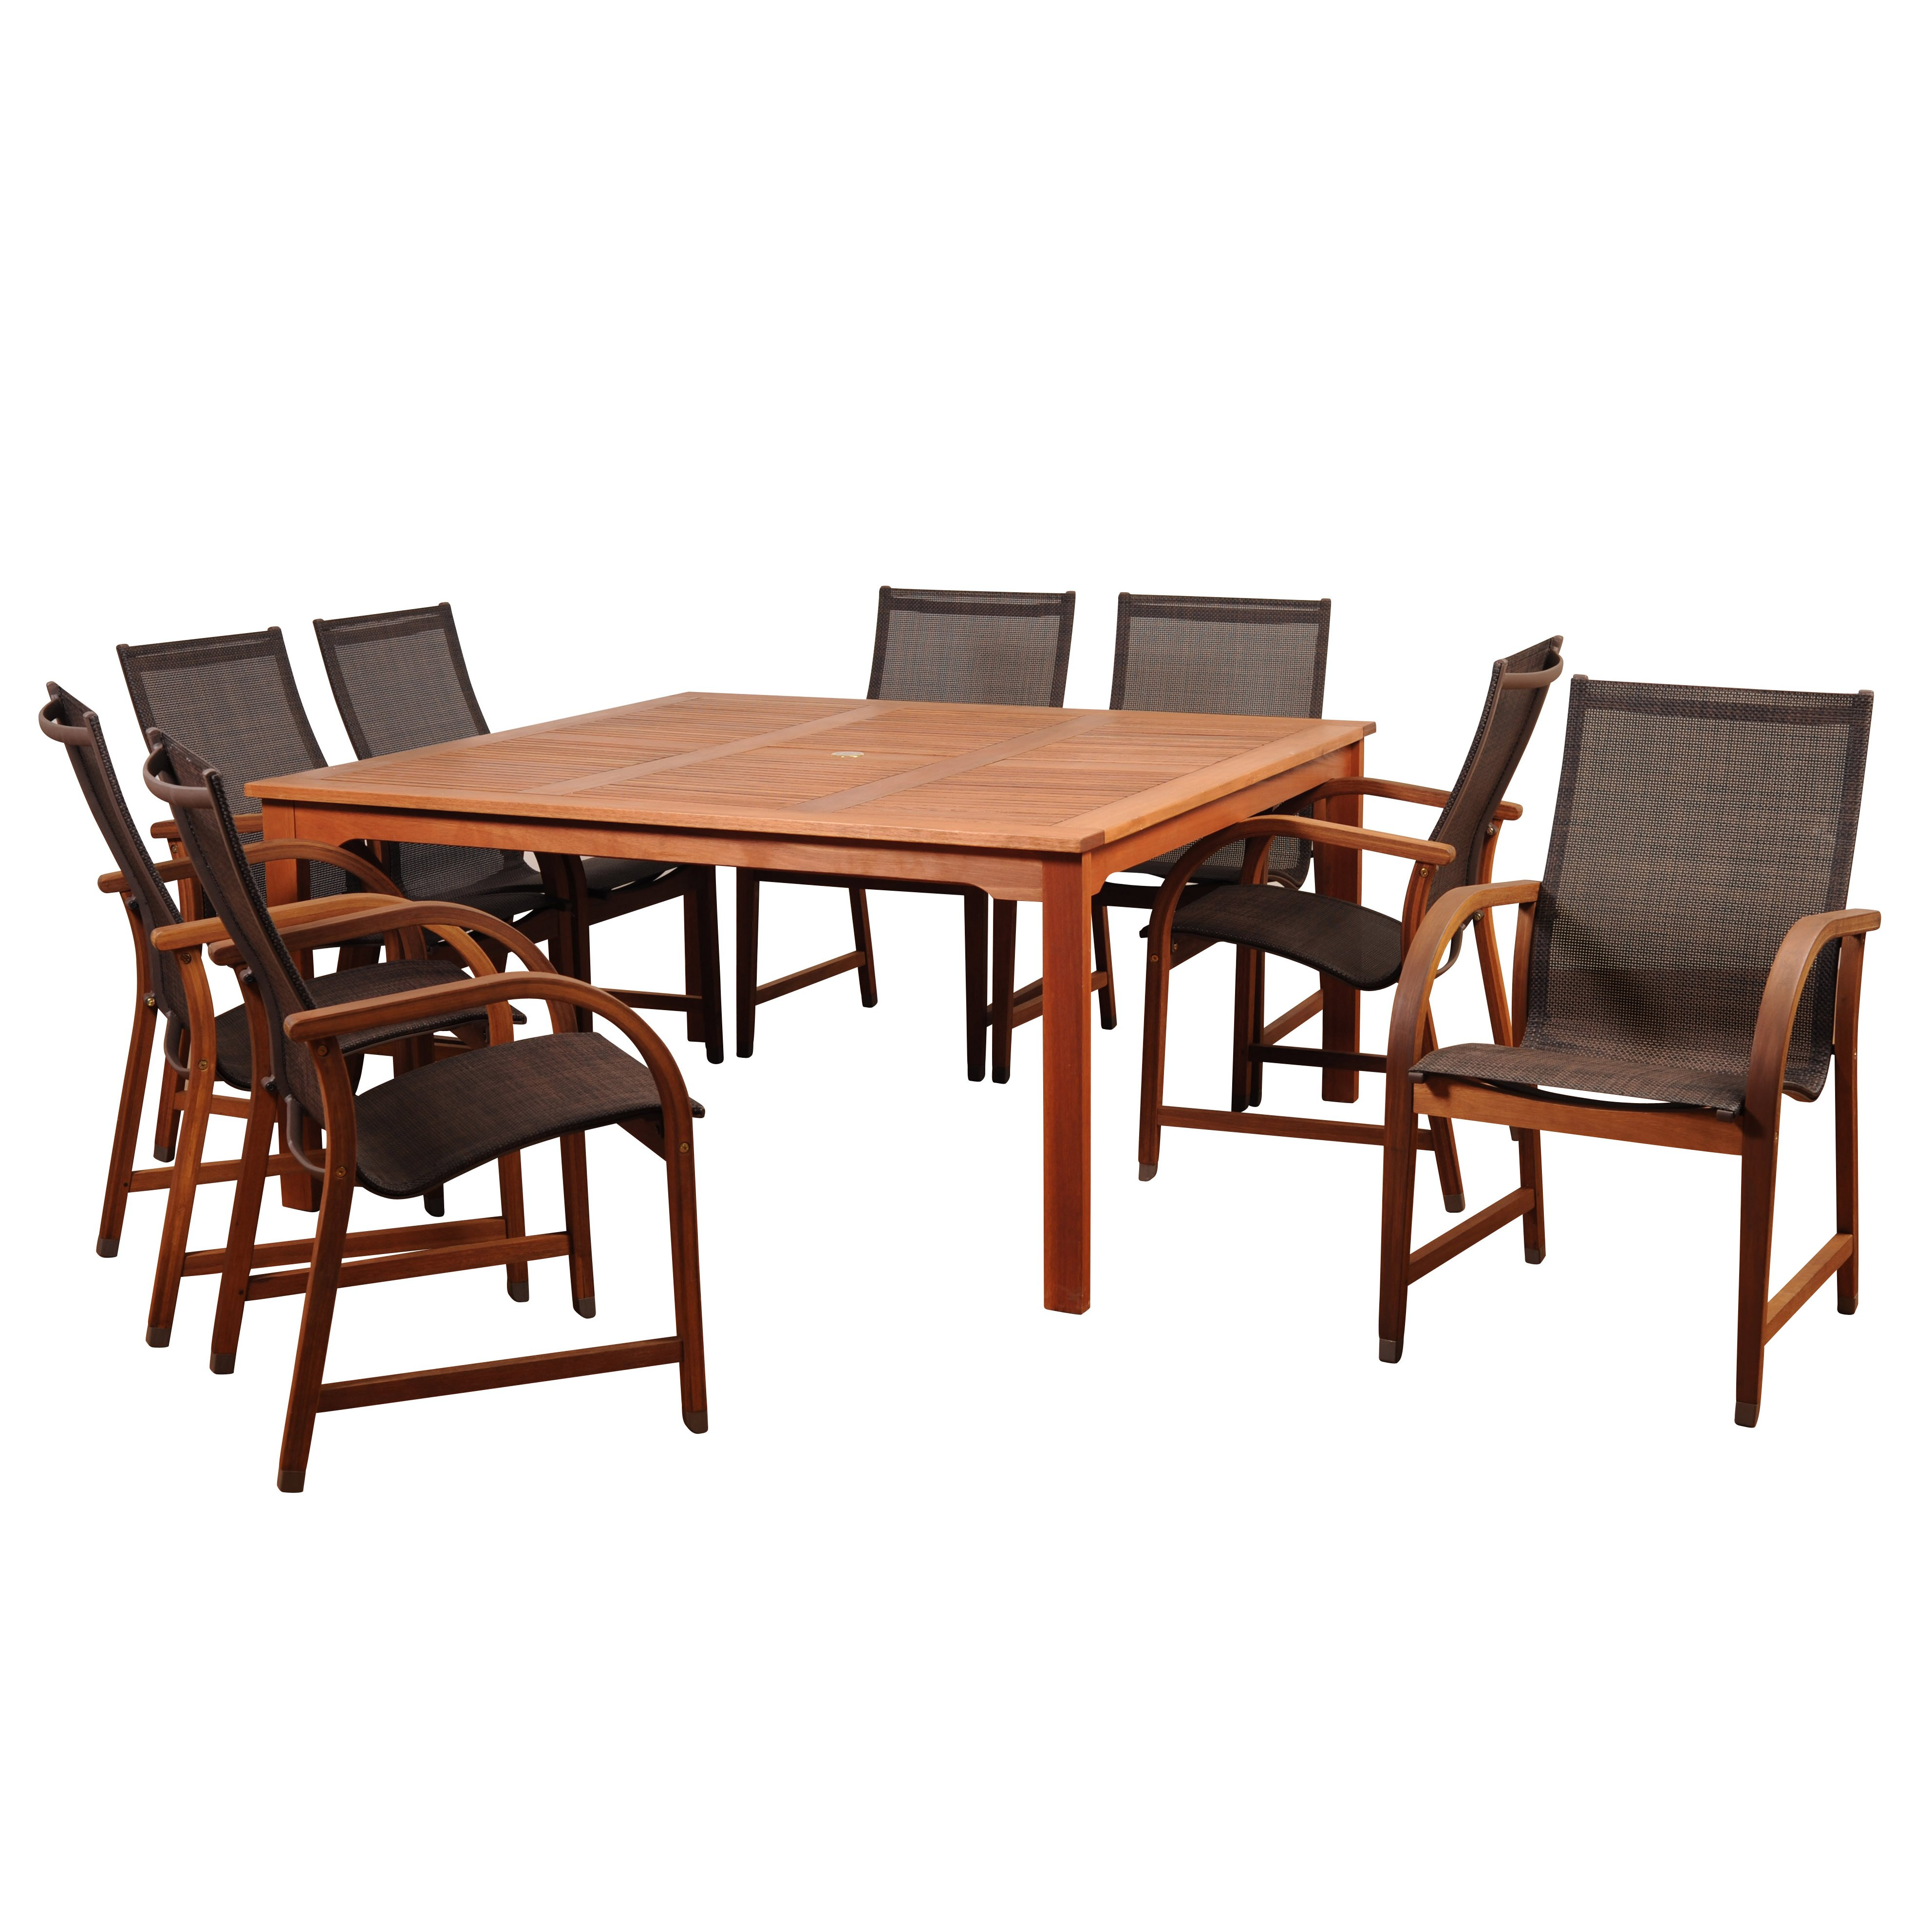 Beachcrest home elsmere 9 piece dining set reviews for Outdoor furniture 9 piece